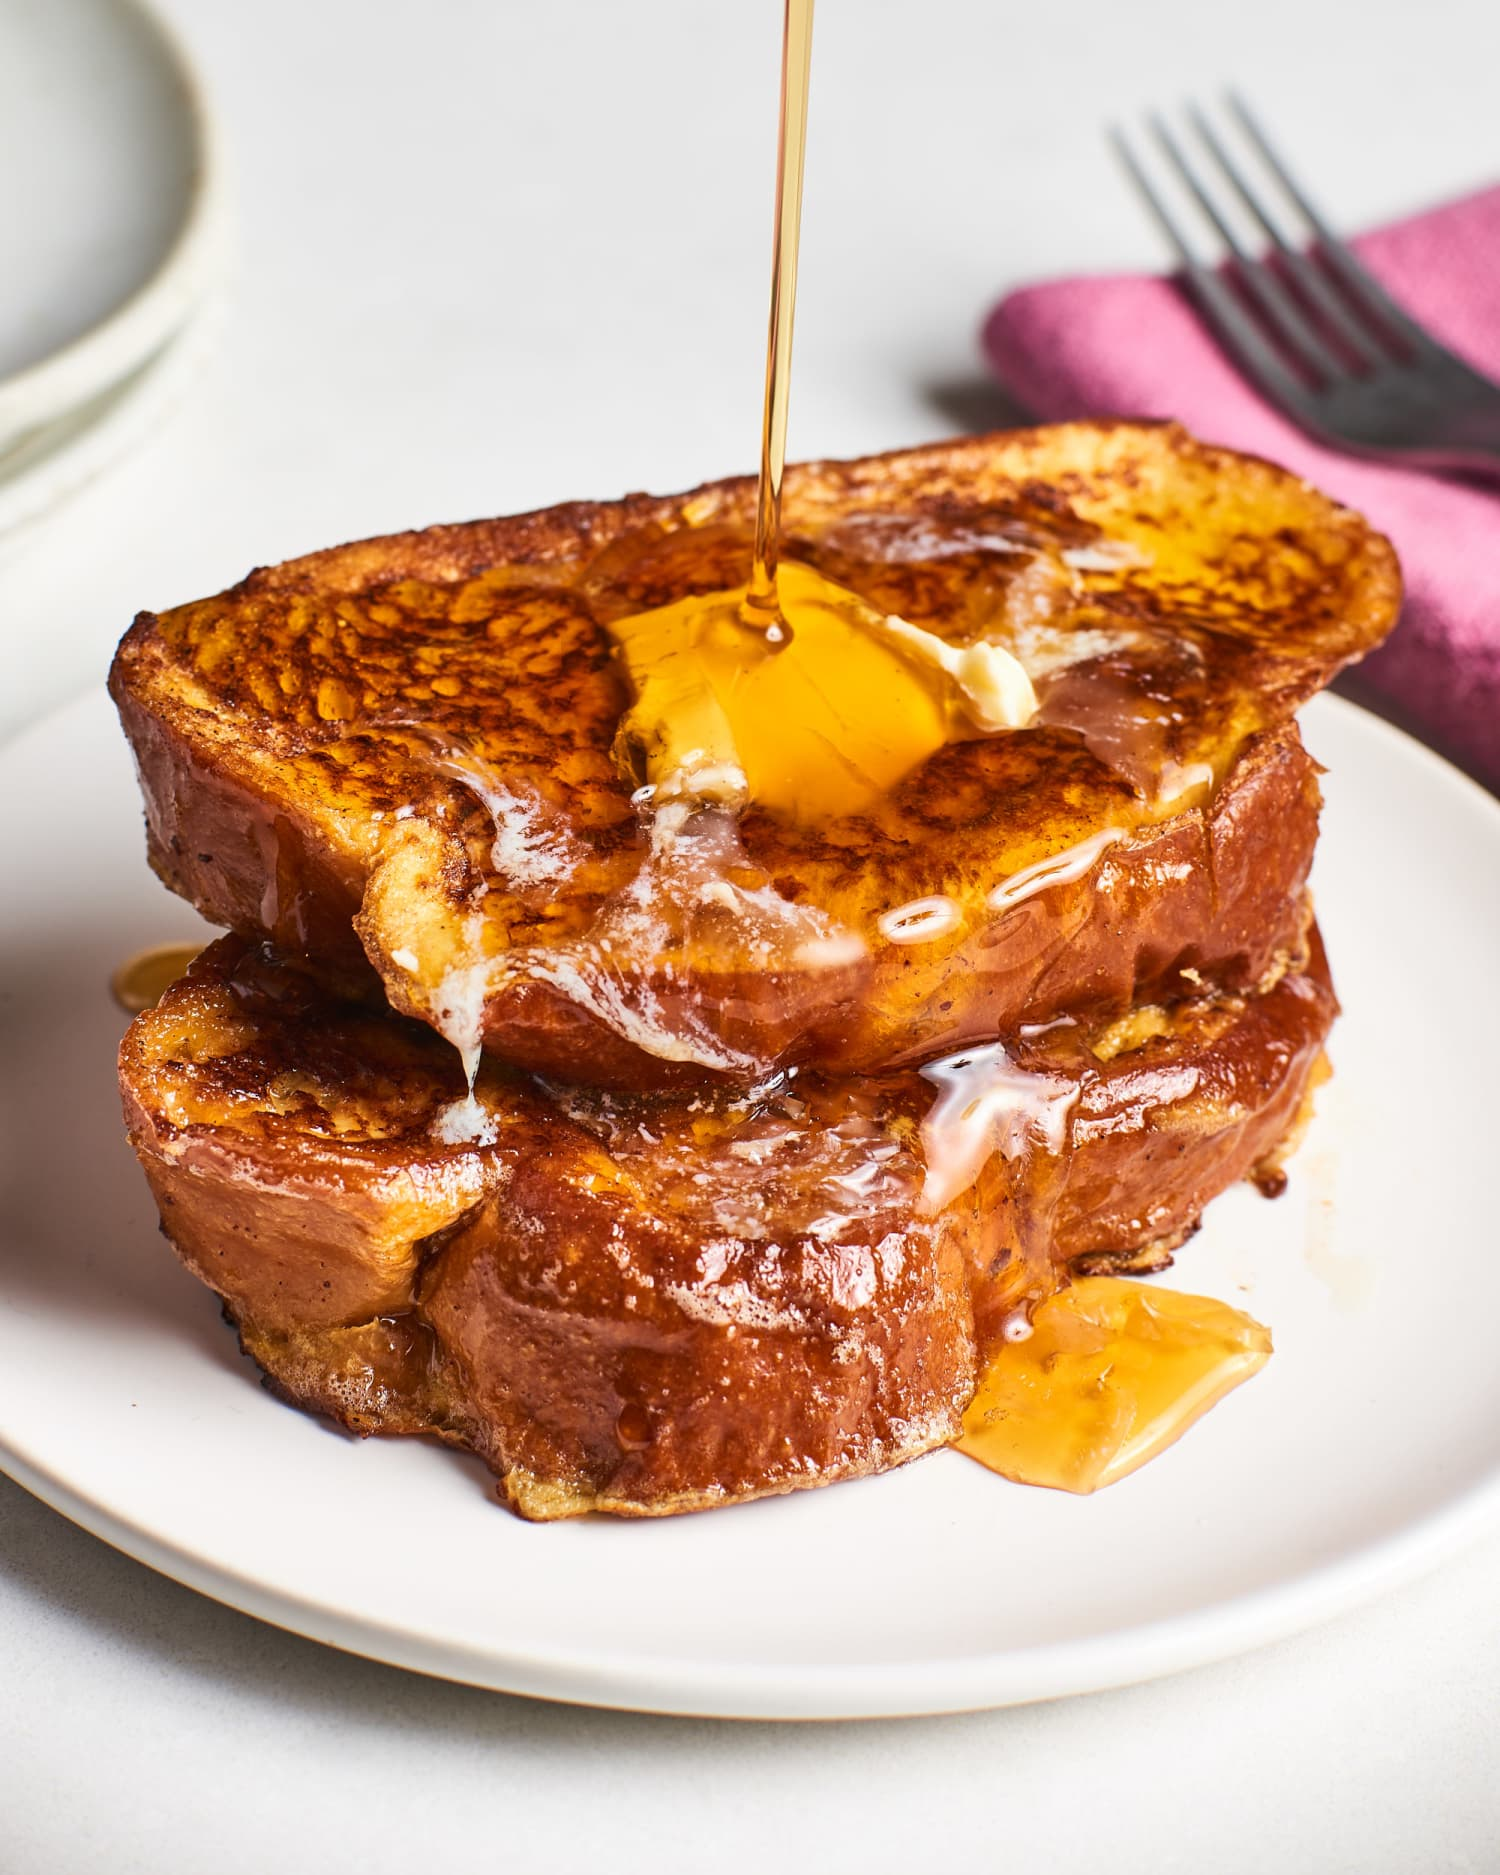 These 10 French Toast Recipes Will Make Your Morning So Much Better